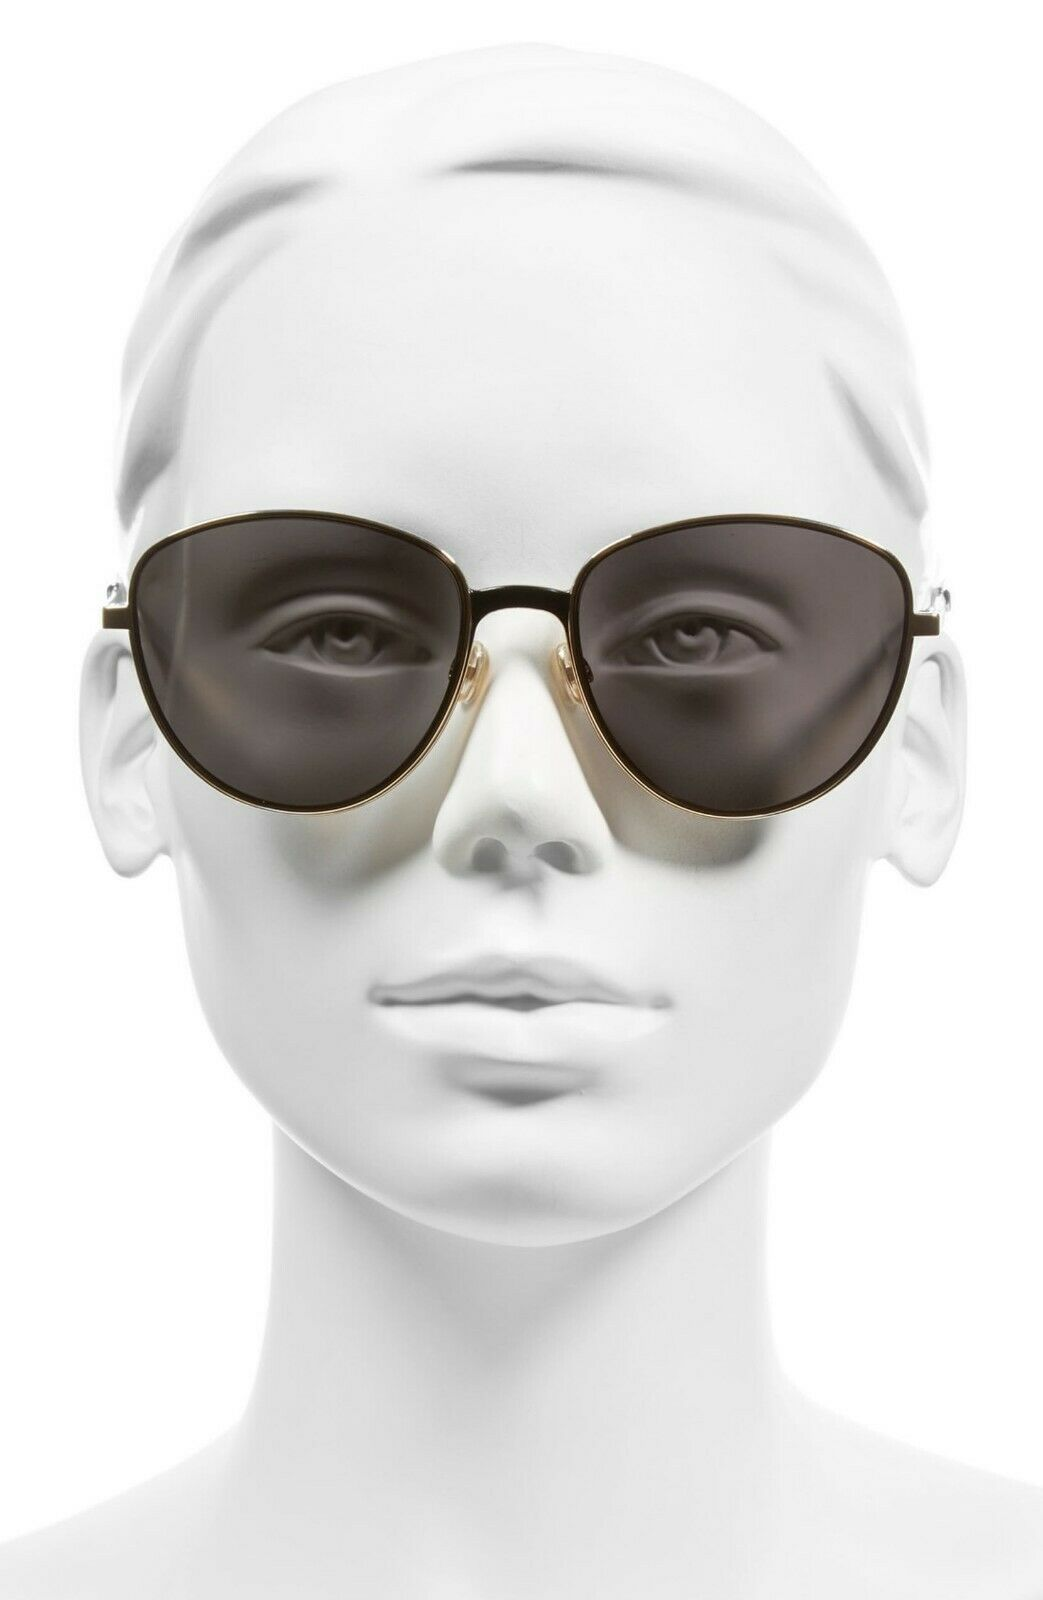 NEW Christian Dior Women's Ultradior/S RCW/Y1 Gold/Matte Black Sunglasses 56mm